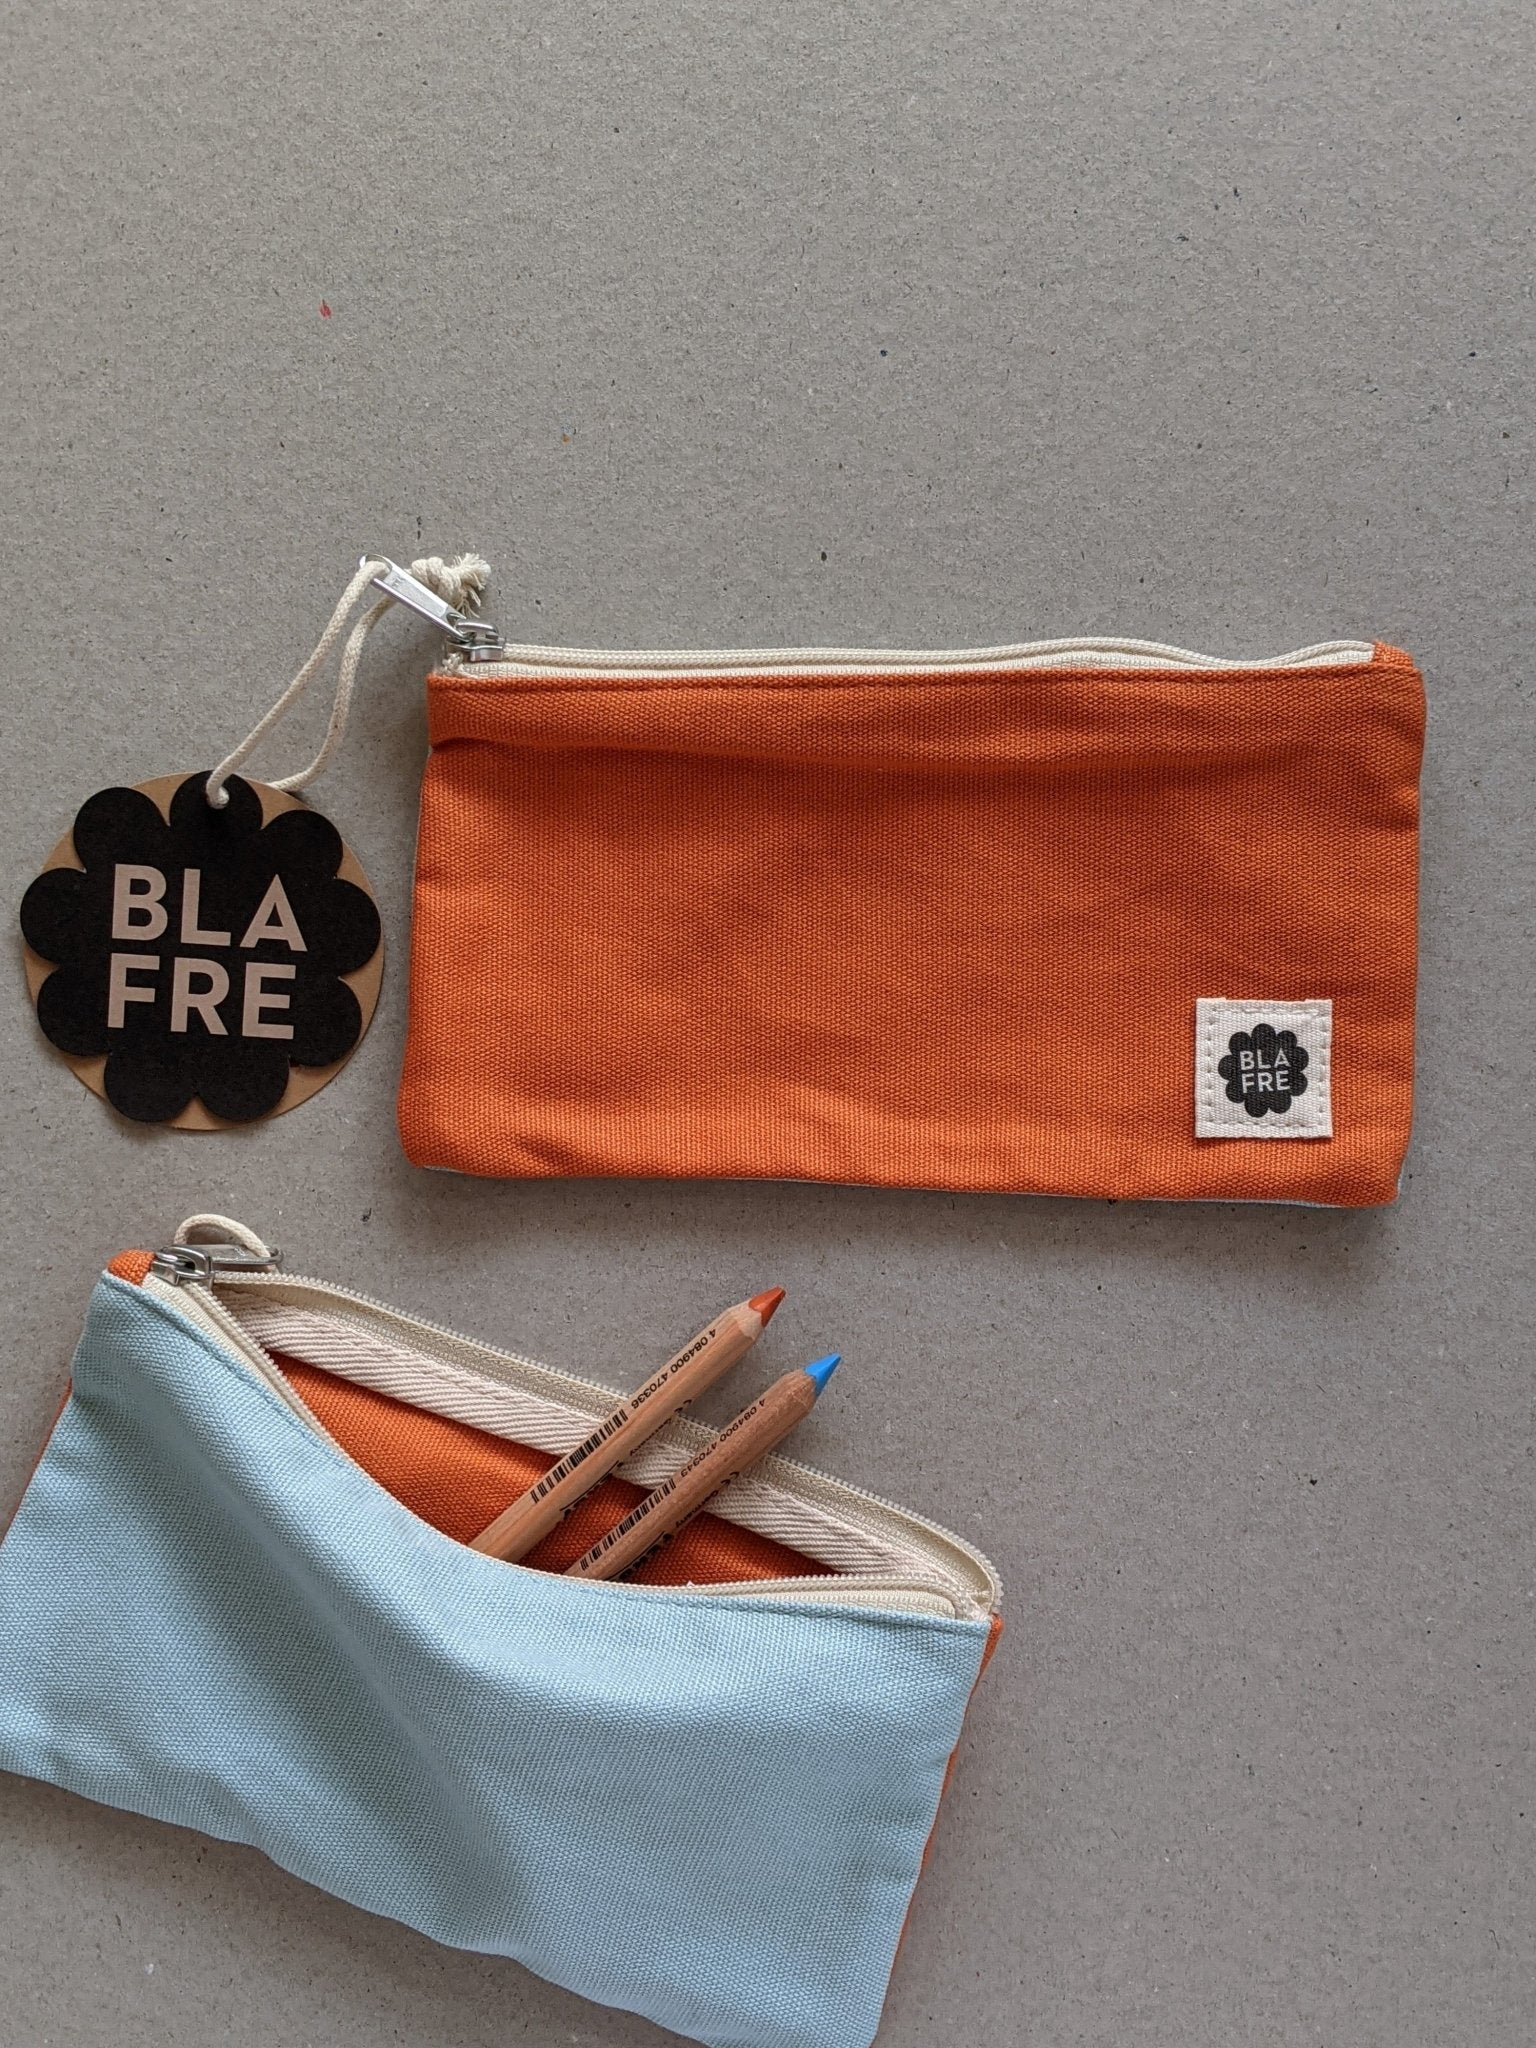 Two Tone Pencil Case, Orange & Blue - The Stationery Cupboard